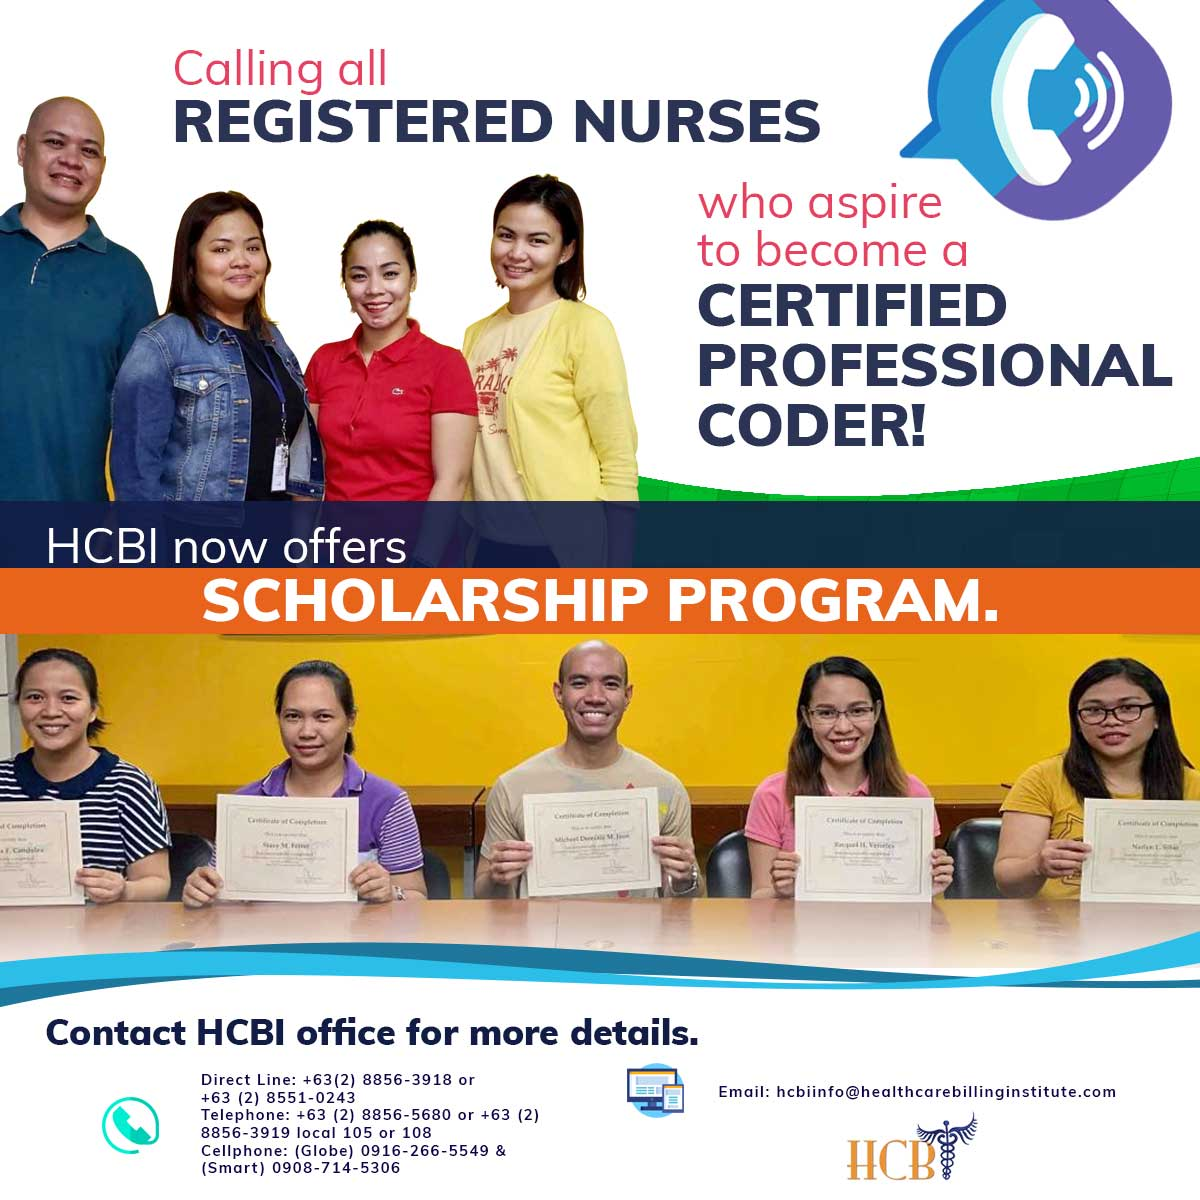 HCBI-ONLINE-Certified-Professional-Training-Course-and-Certification_3.jpg, hcbi